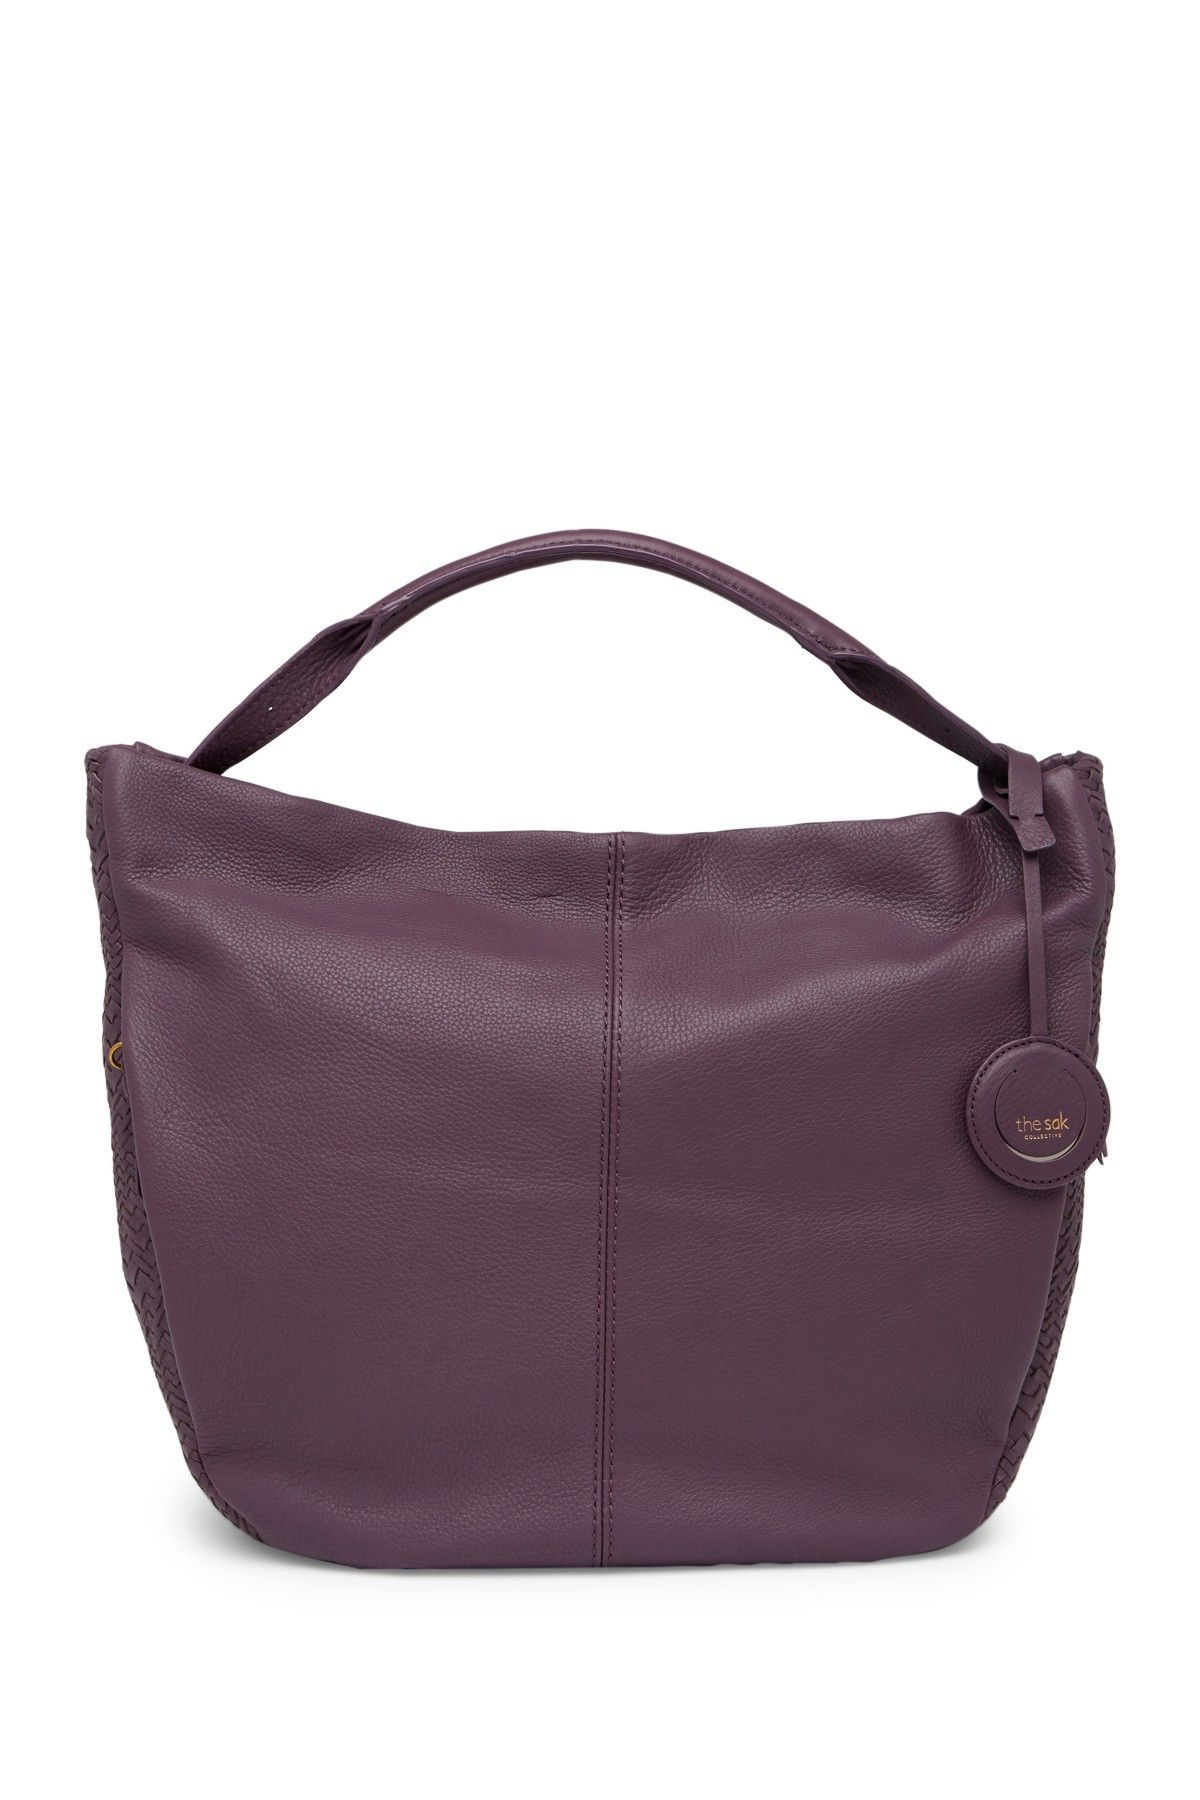 63d7245b9ee4 The 120 Large Leather Hobo Bag by The Sak on @nordstrom_rack #hobobags